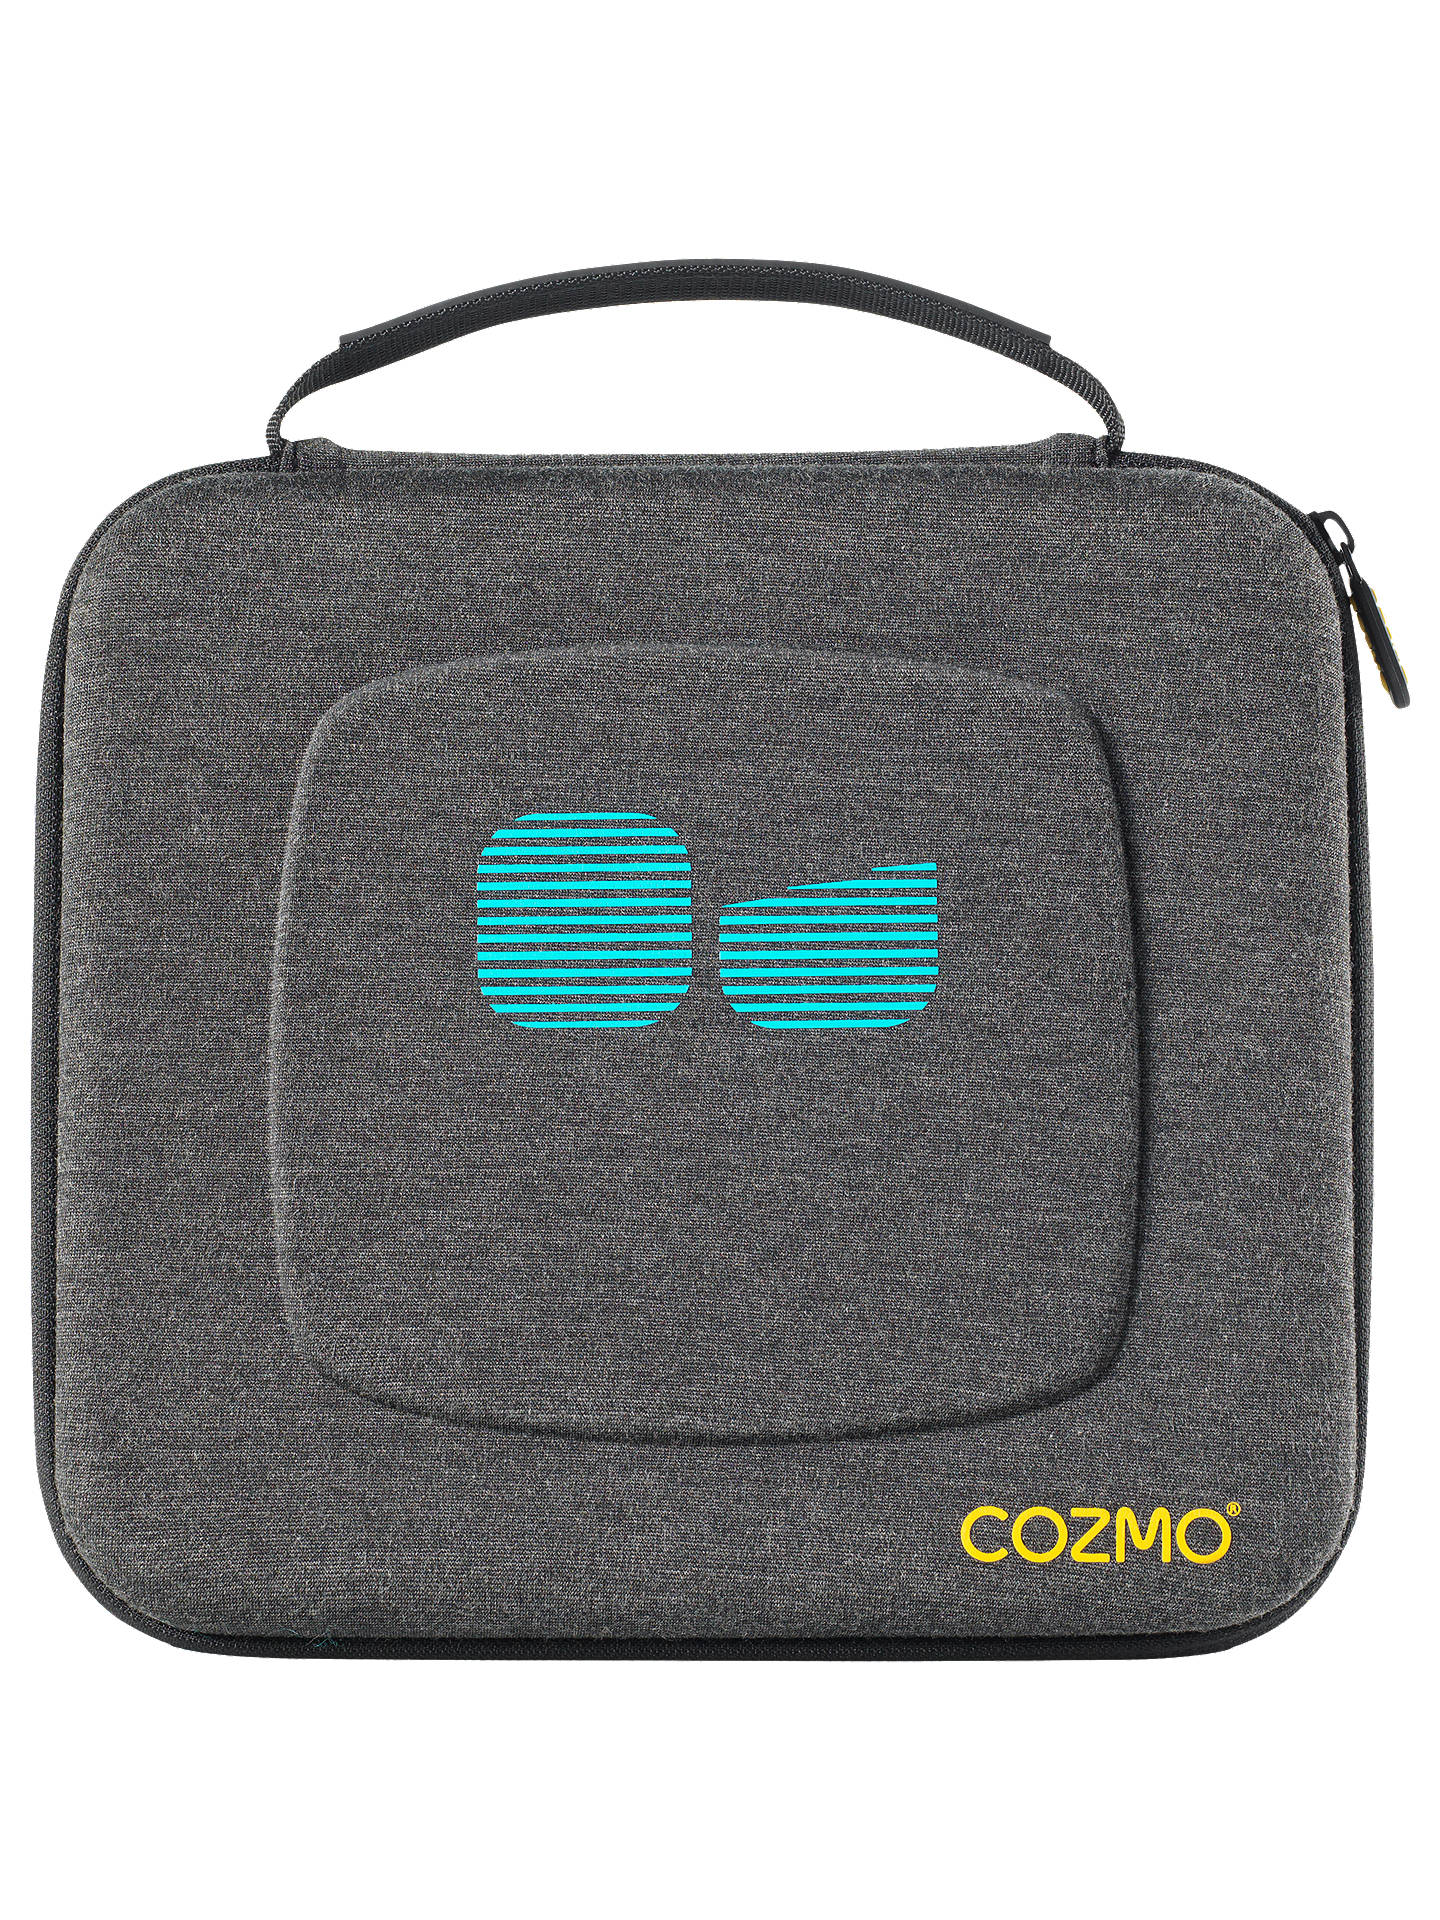 BuyAnki Cozmo Carry Case Online at johnlewis.com